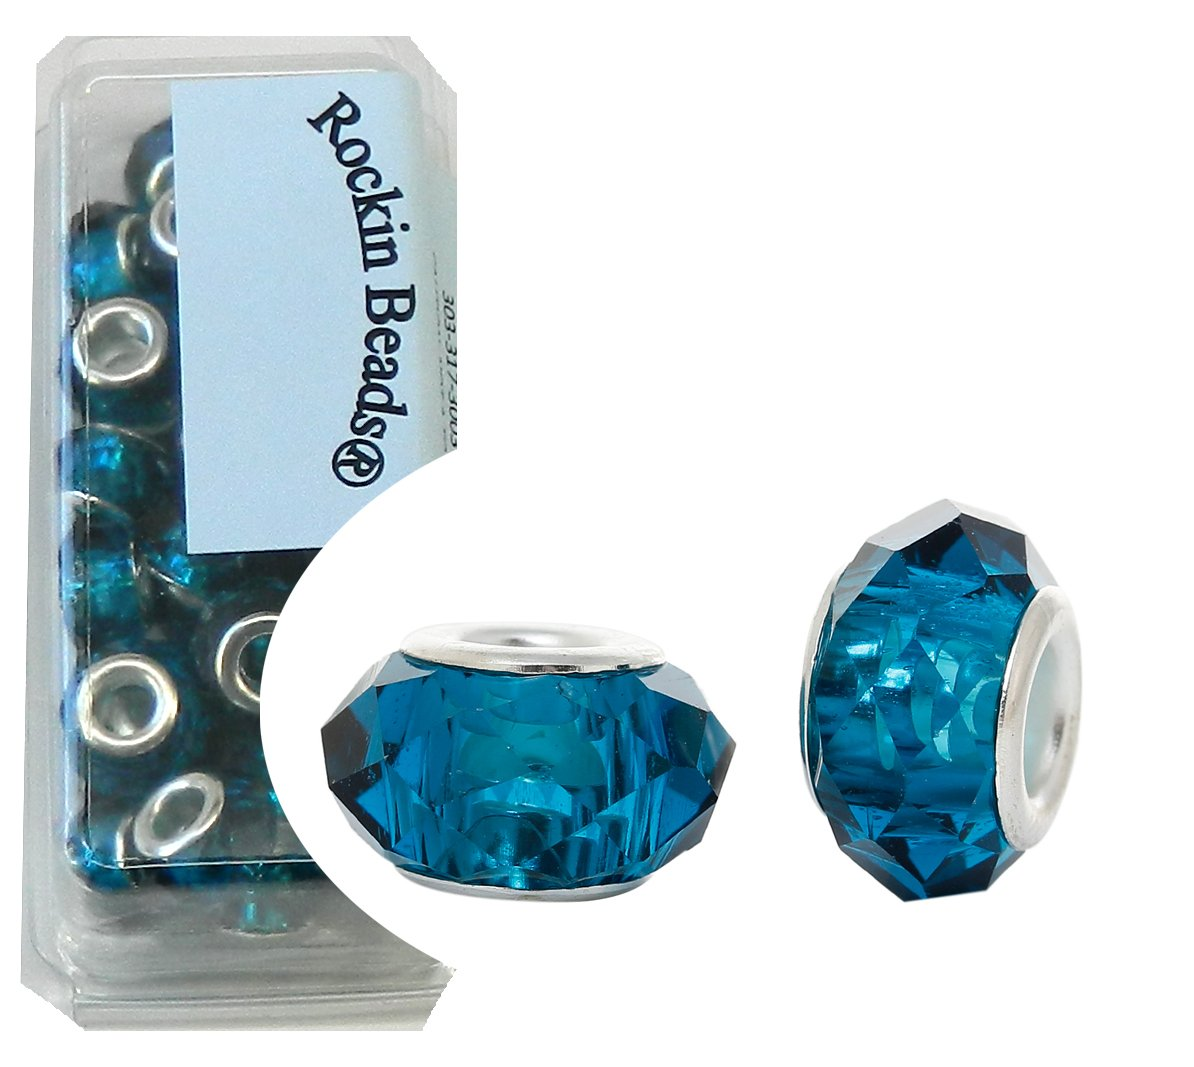 Rockin Beads 24 Teal Blue Beads Faceted Glass Large 4.5-5mm Hole